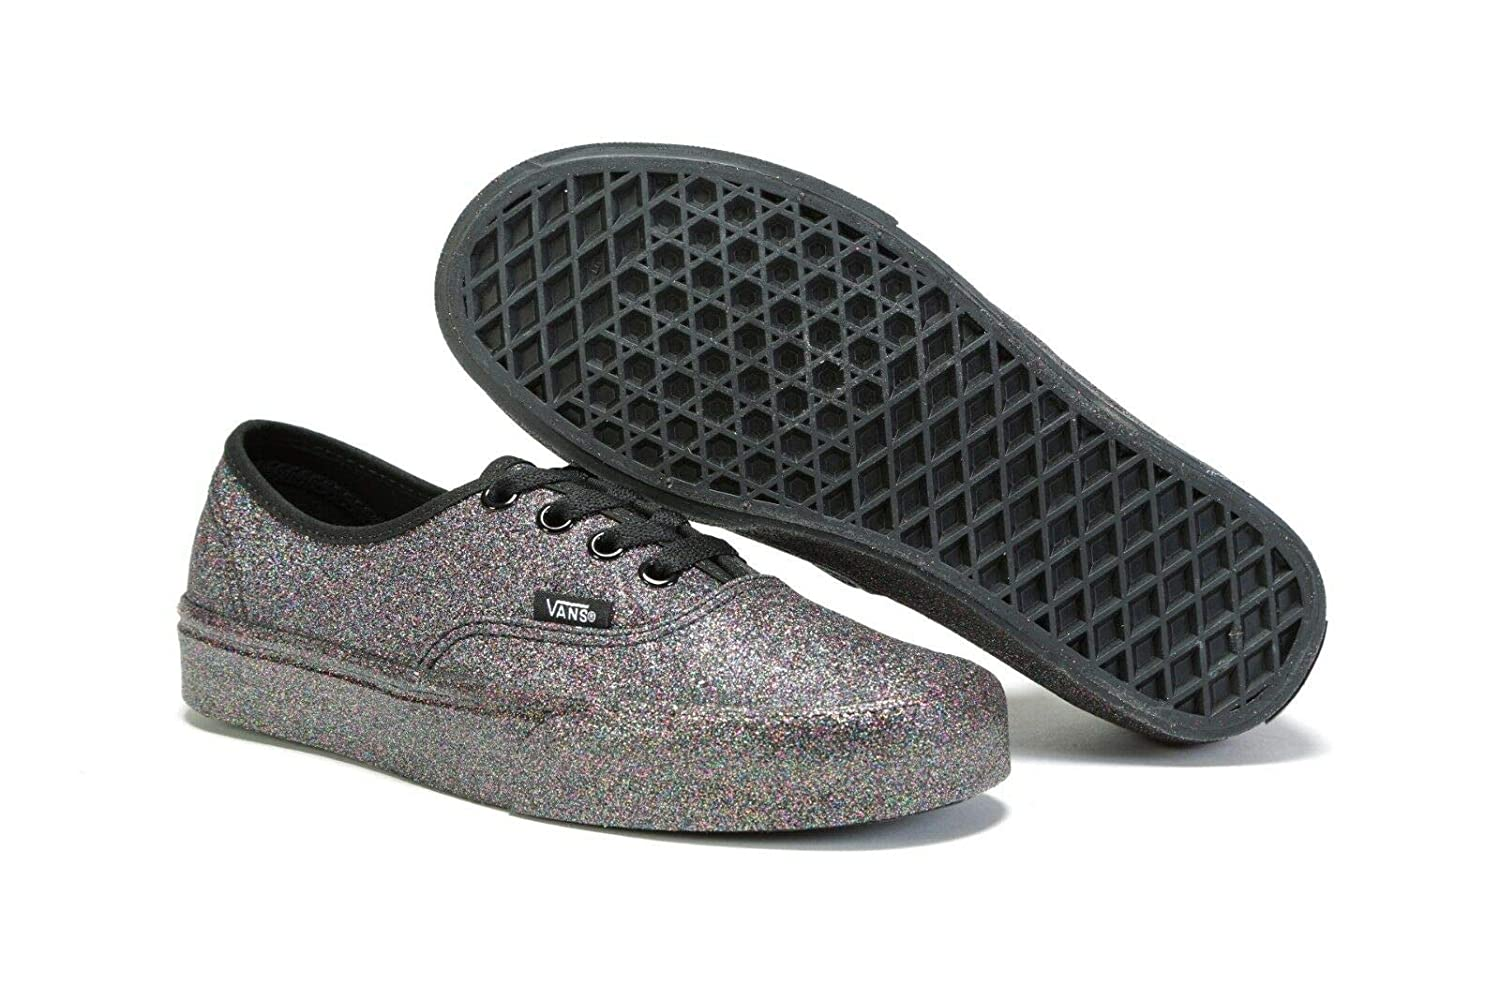 [バンズ] スニーカー Women's AUTHENTIC (Pig Suede) VN0A38EMU5O レディース B07NCN3993 Rainbow Glitter 9 M US Women / 7.5 M US Men 9 M US Women / 7.5 M US Men|Rainbow Glitter